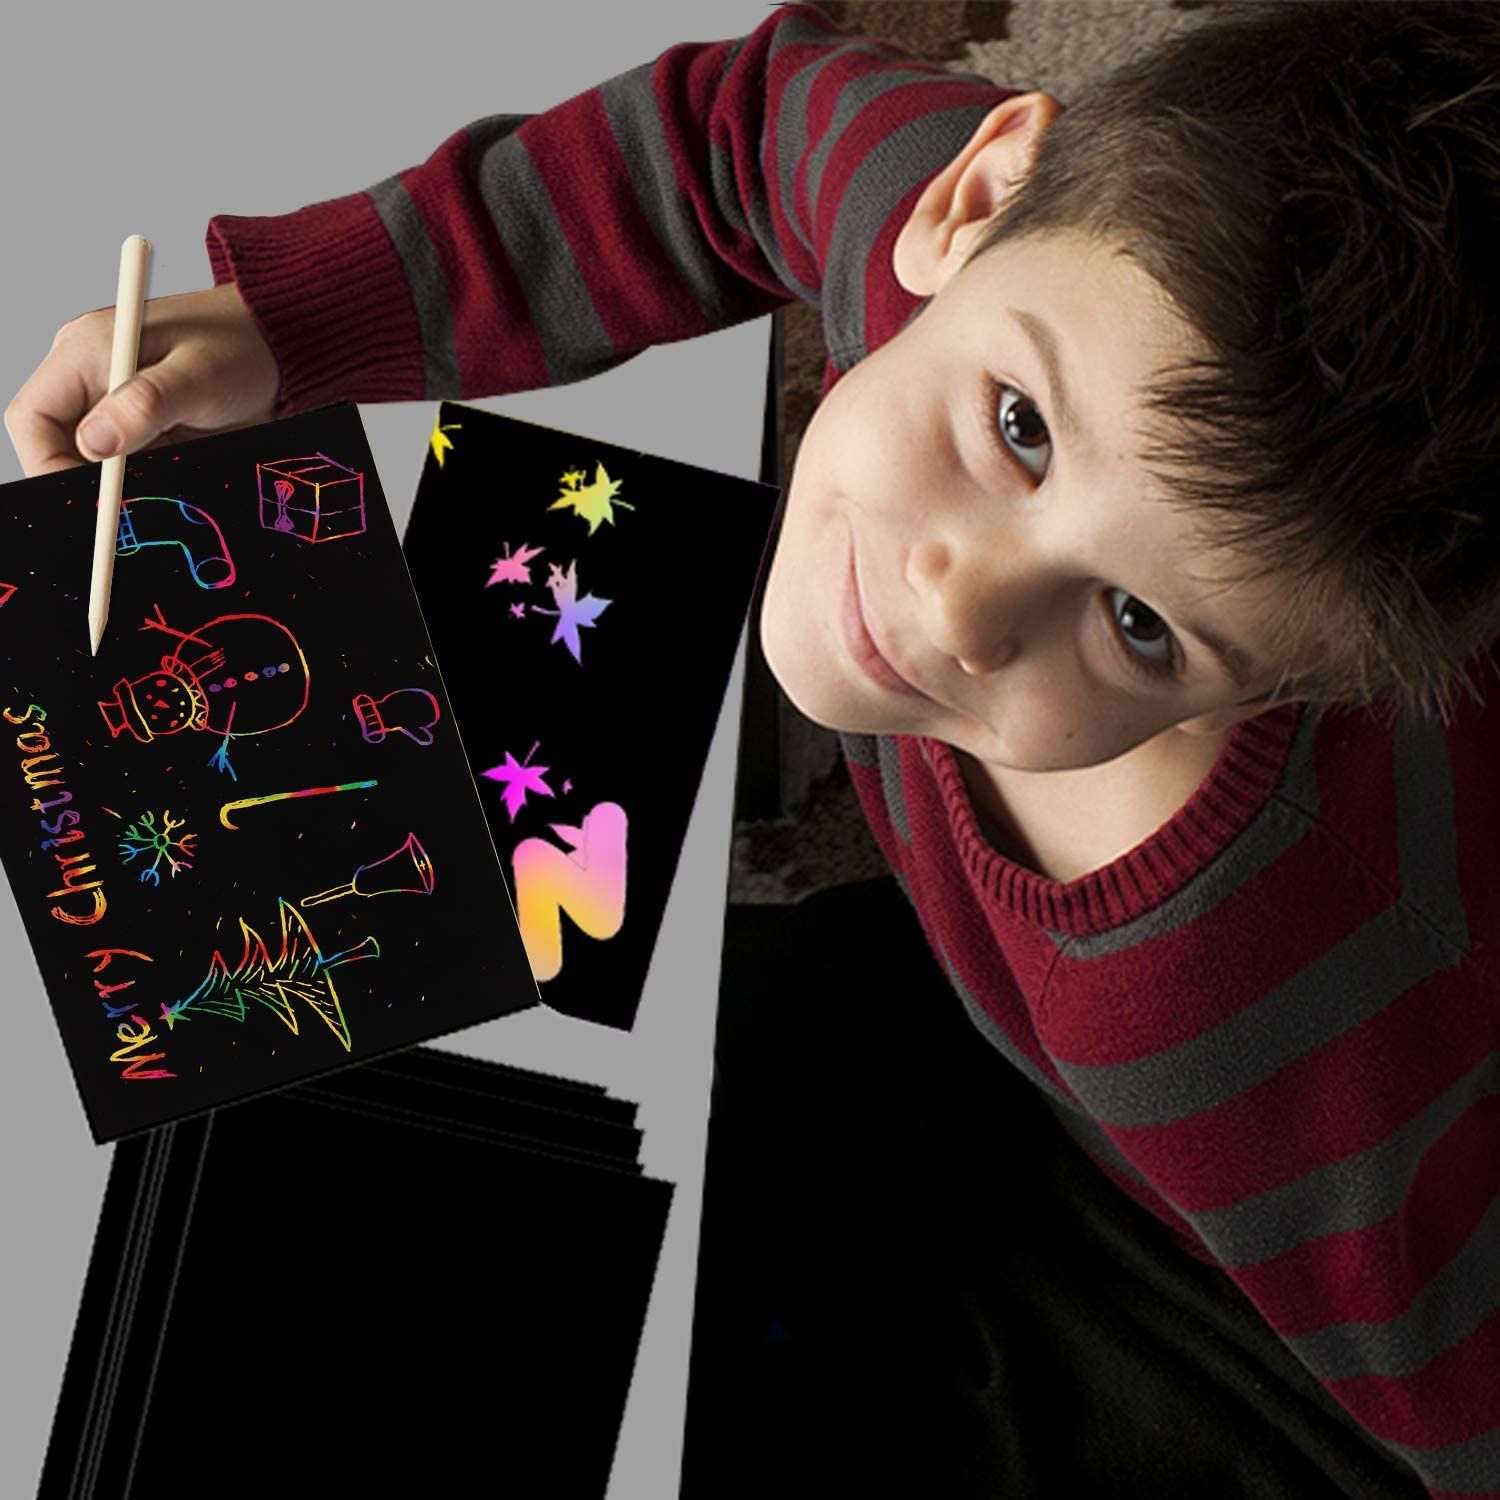 SKYFIELD Scratch Paper Art Set 36 Sheets Rainbow Magic Paper Black Scratch it Off Art Crafts Notes Boards with 4 Wooden Stylus for Kids Christmas Birthday Gift